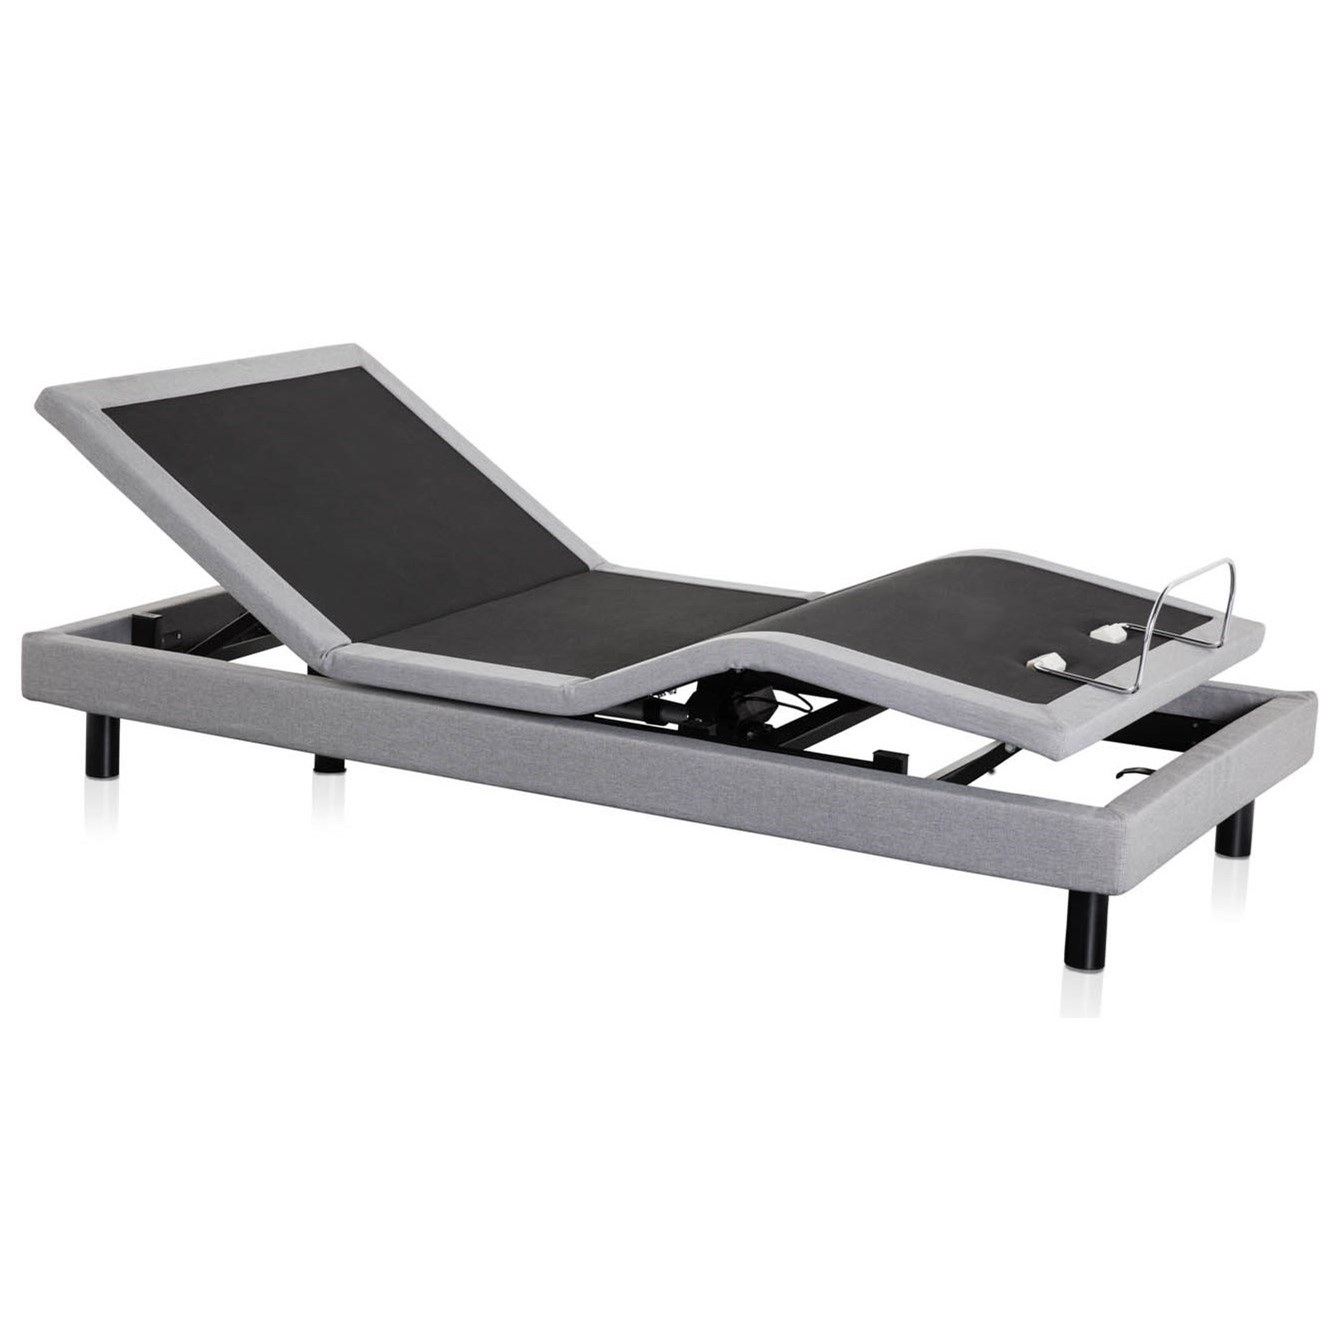 Malouf Structures M510 Adjustable Bed Base Twin Extra Long ...